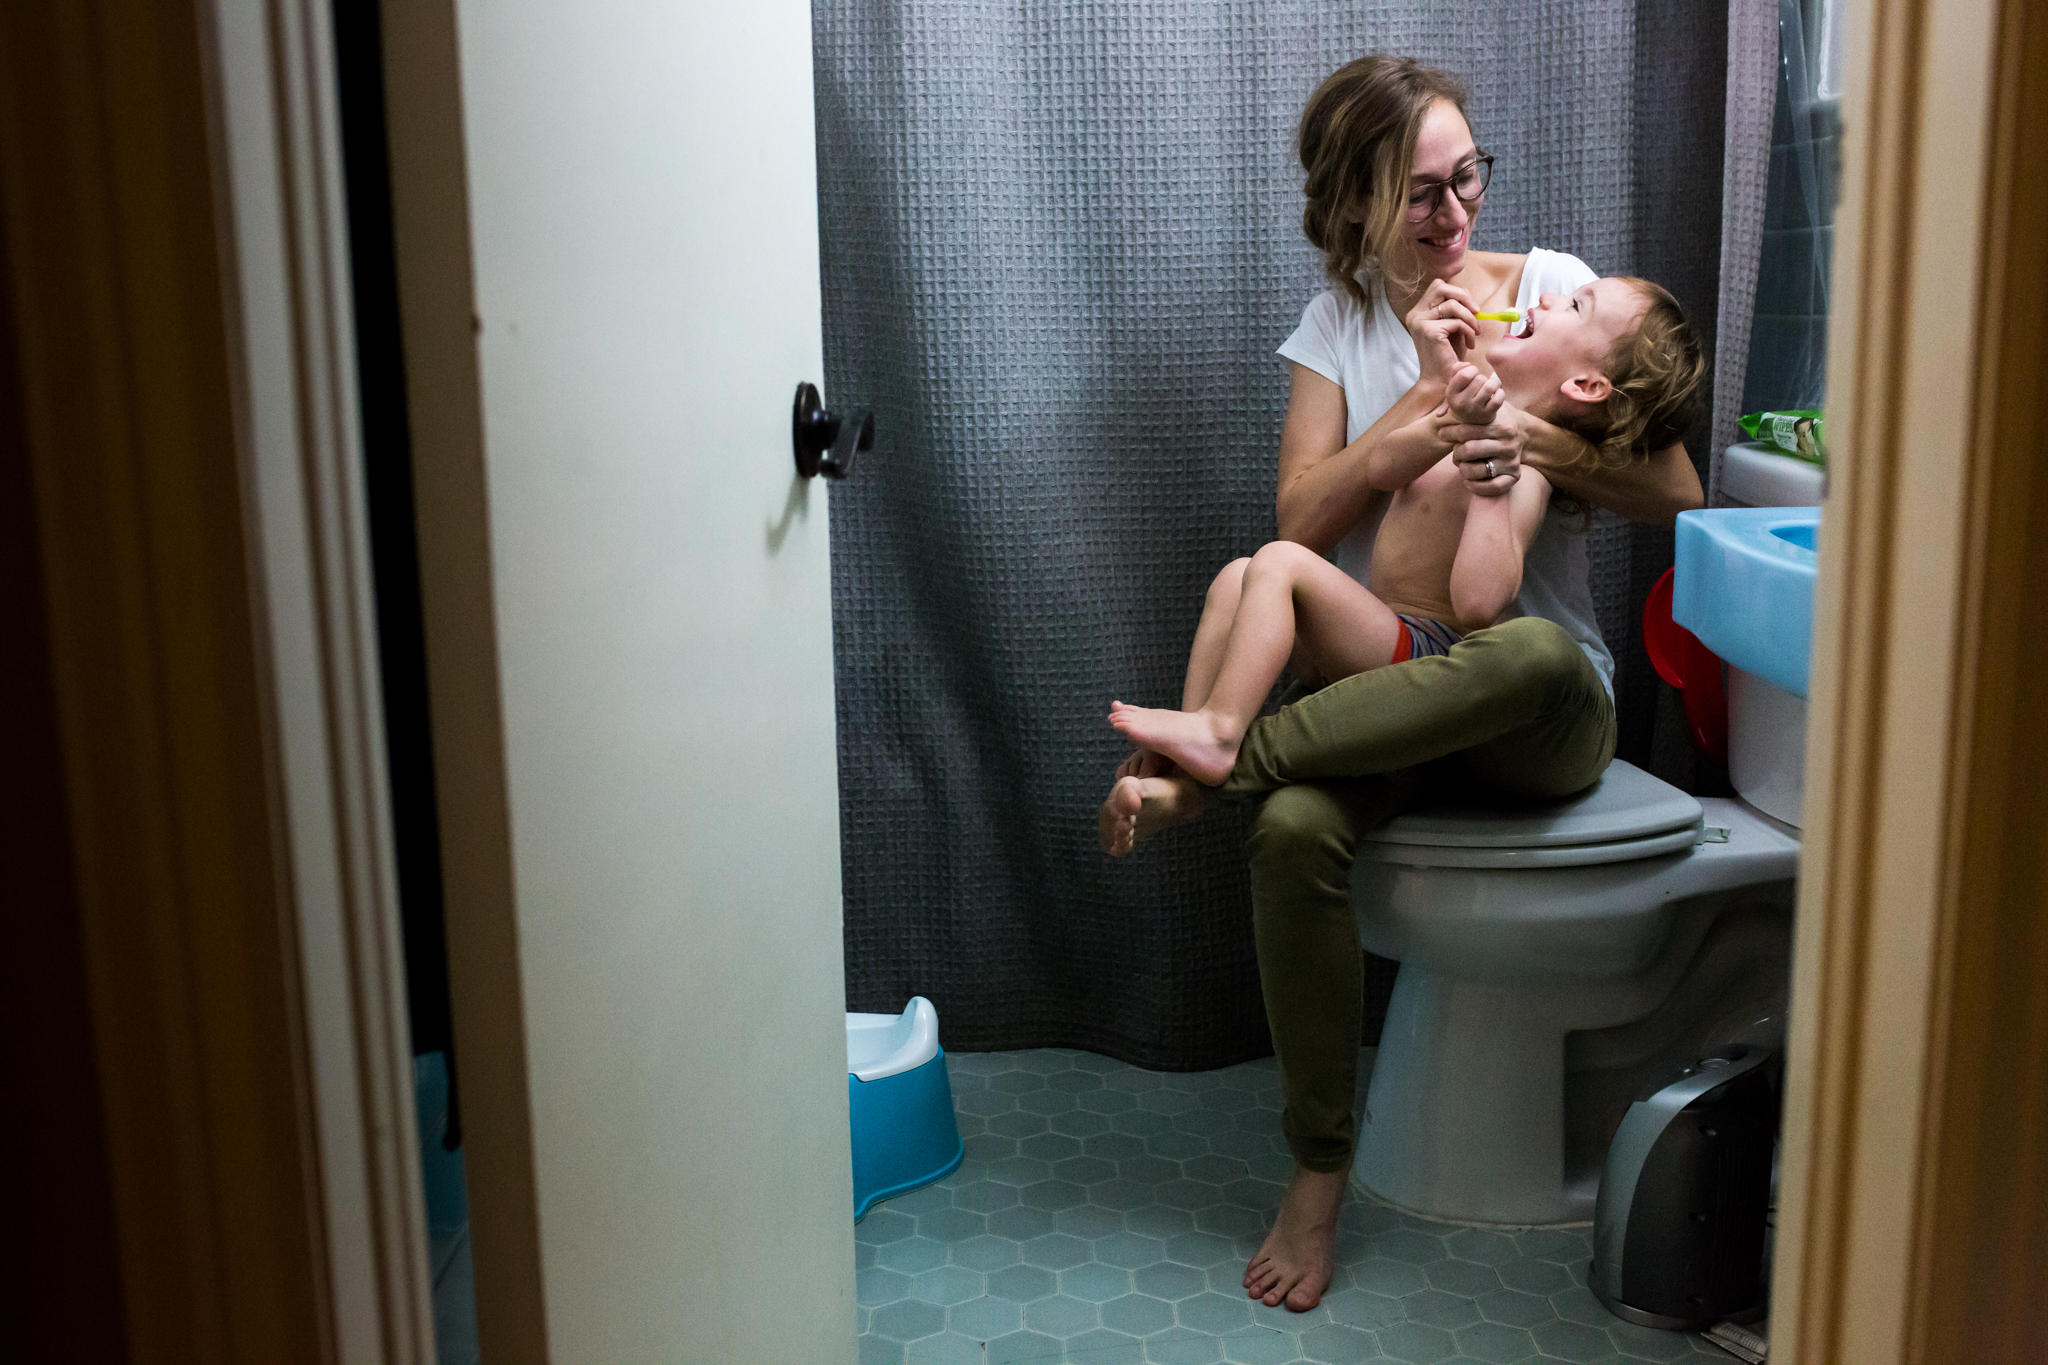 Lawren Rose Photography, a dallas family photojournalist, takes a photograph of a Mom trying to brush her wild child's teeth